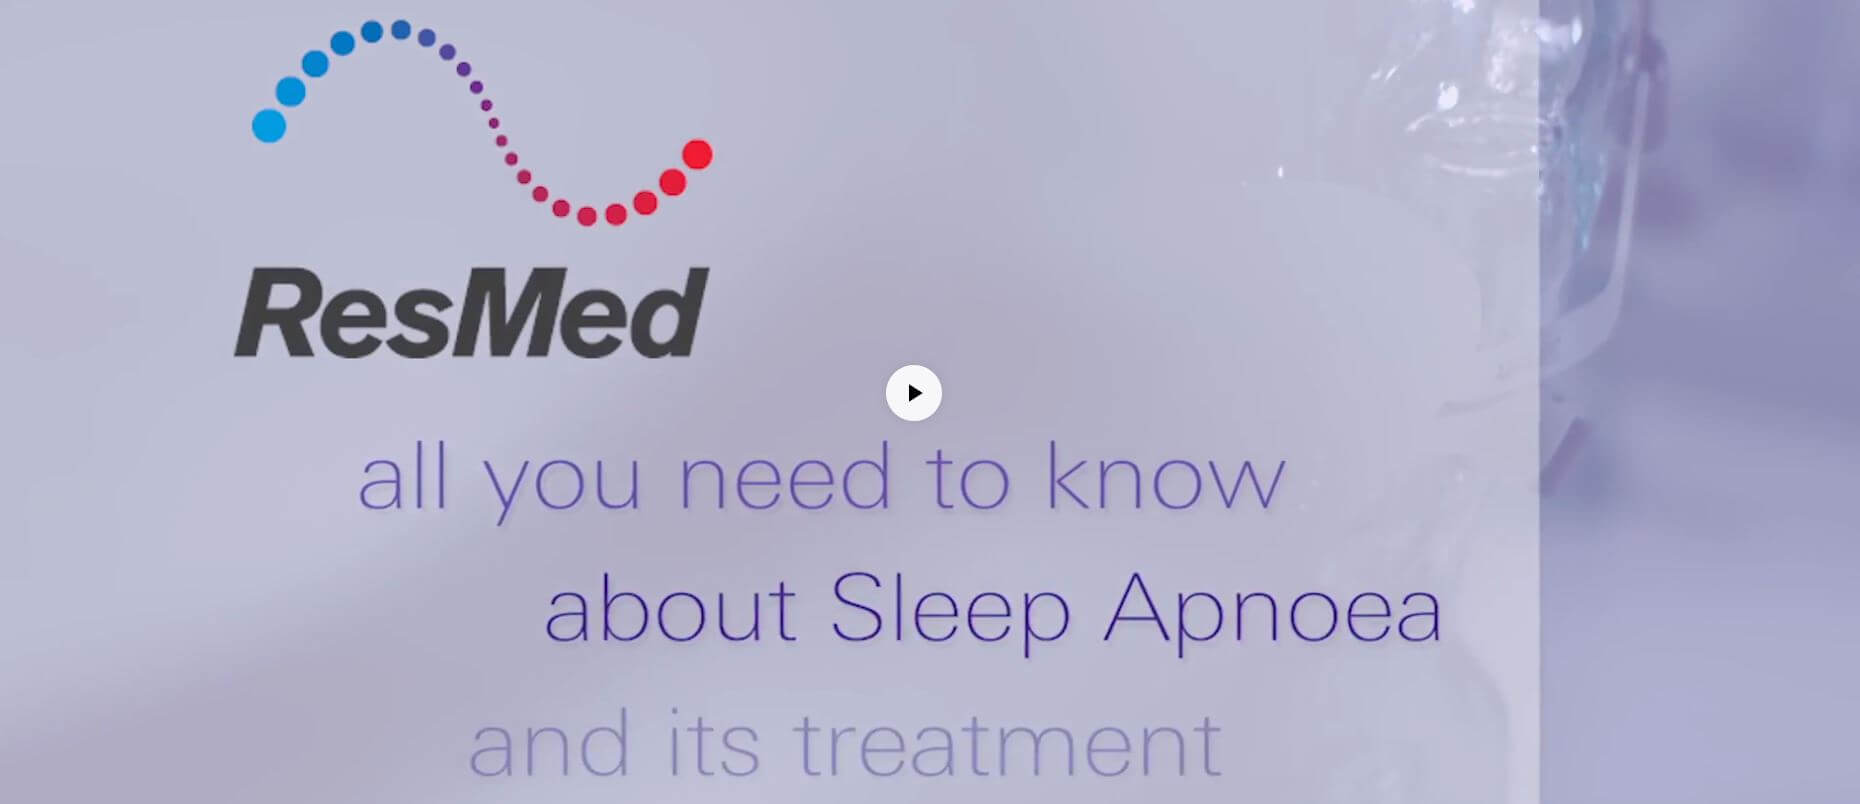 Sleep apnea treatments in video by ResMed